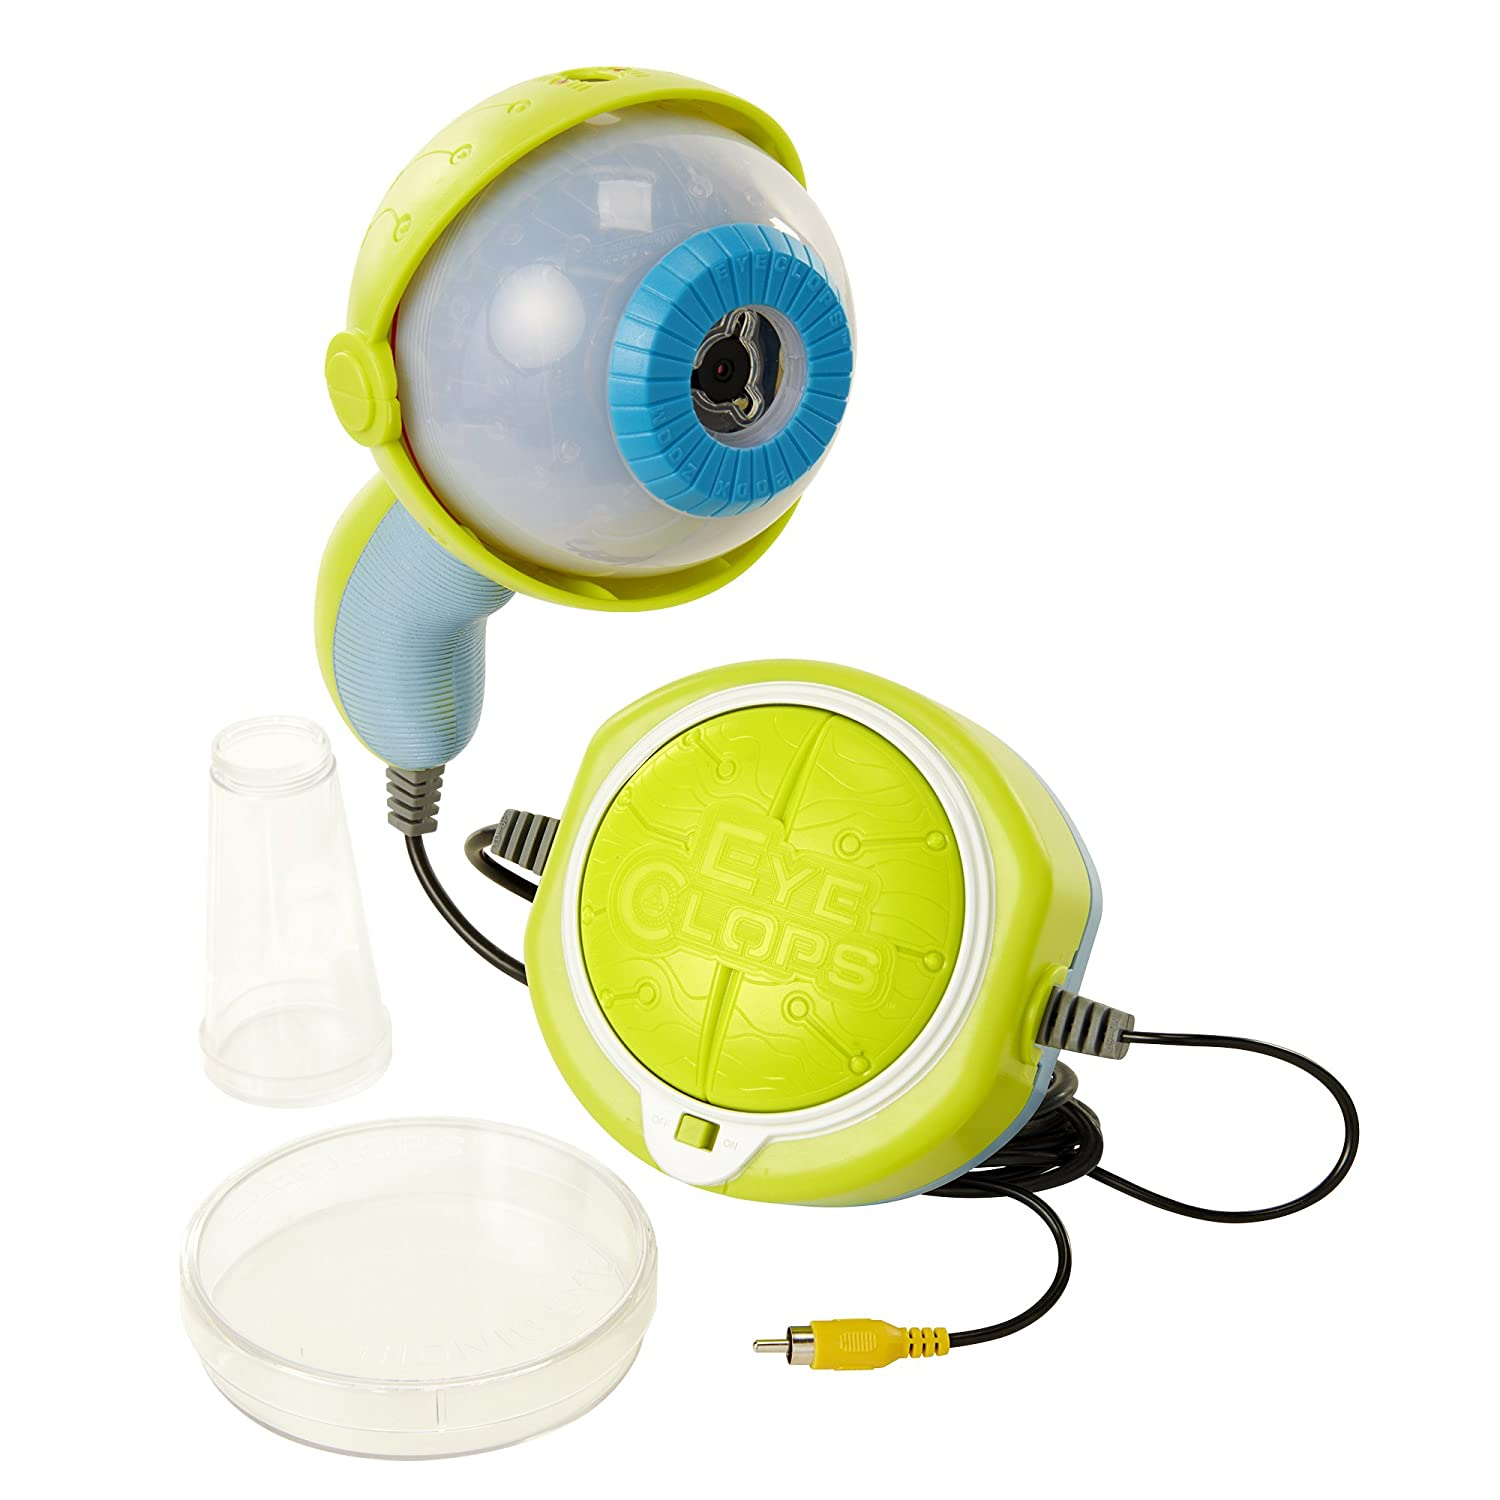 EyeClops Video Microscope Toy Magnify Objects 200x On Your Tv Jakks 09388